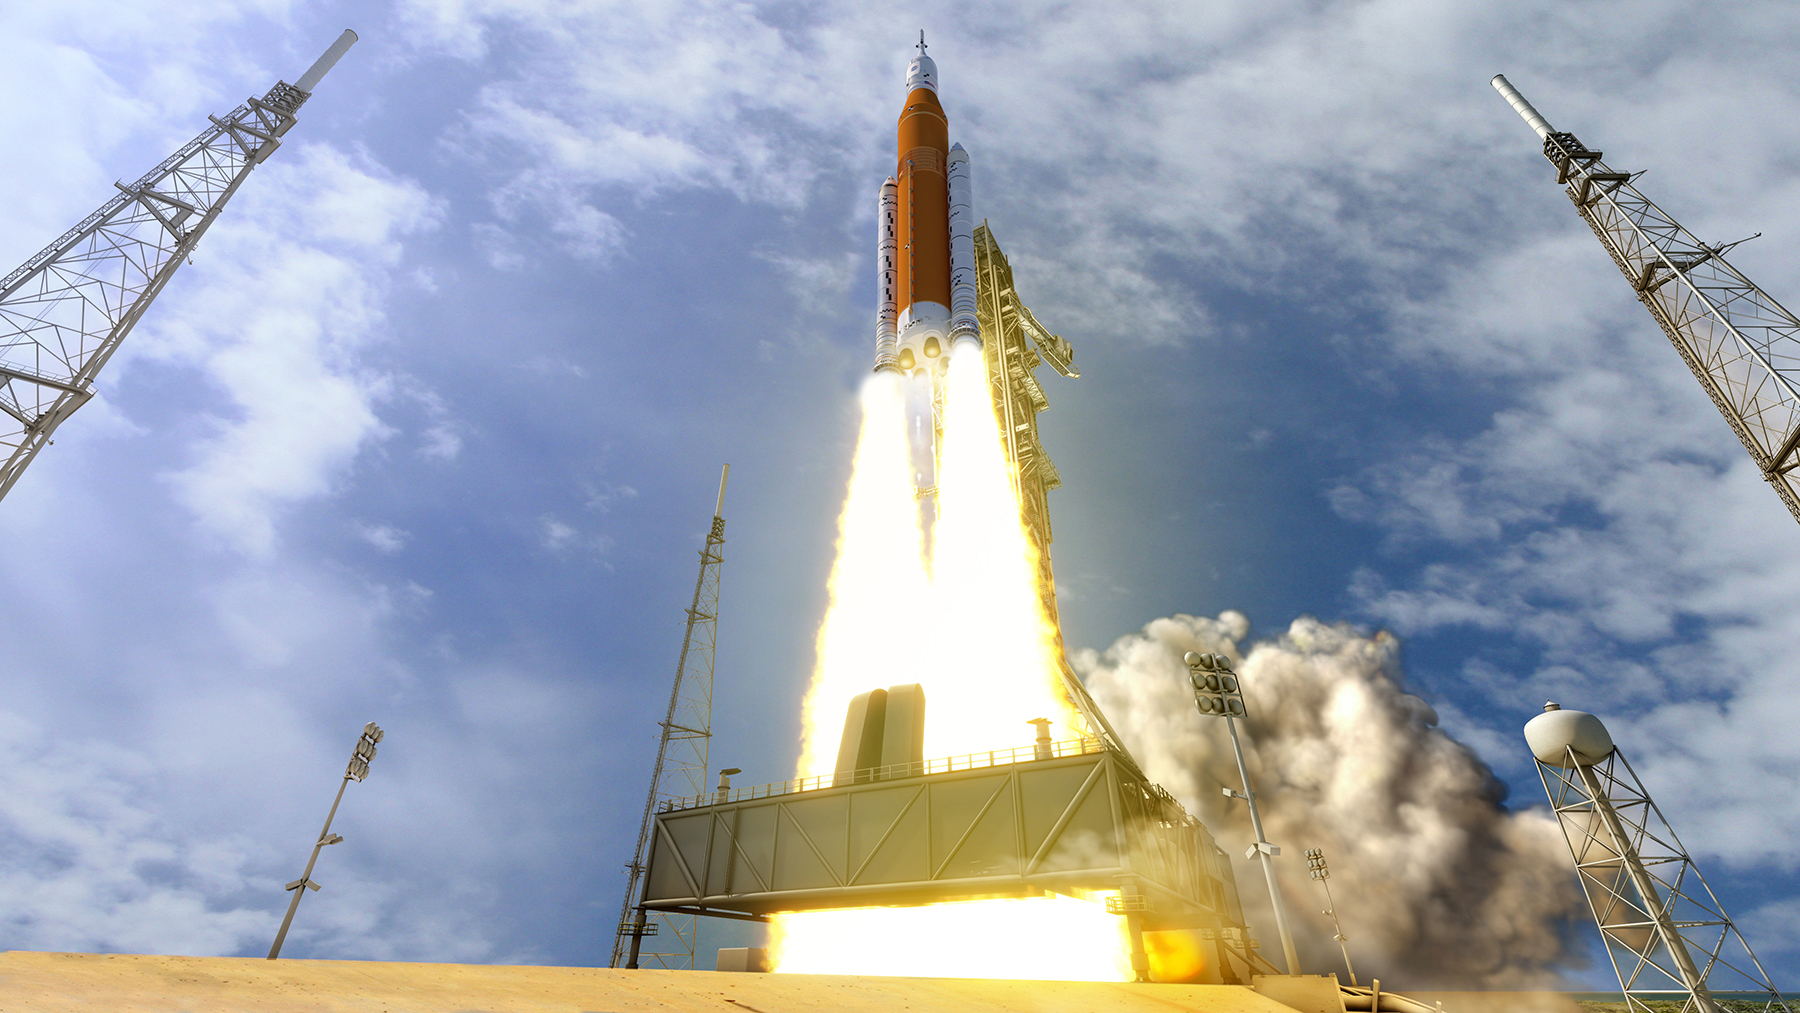 Learn Everything About A Rocket Launch Using This Video!